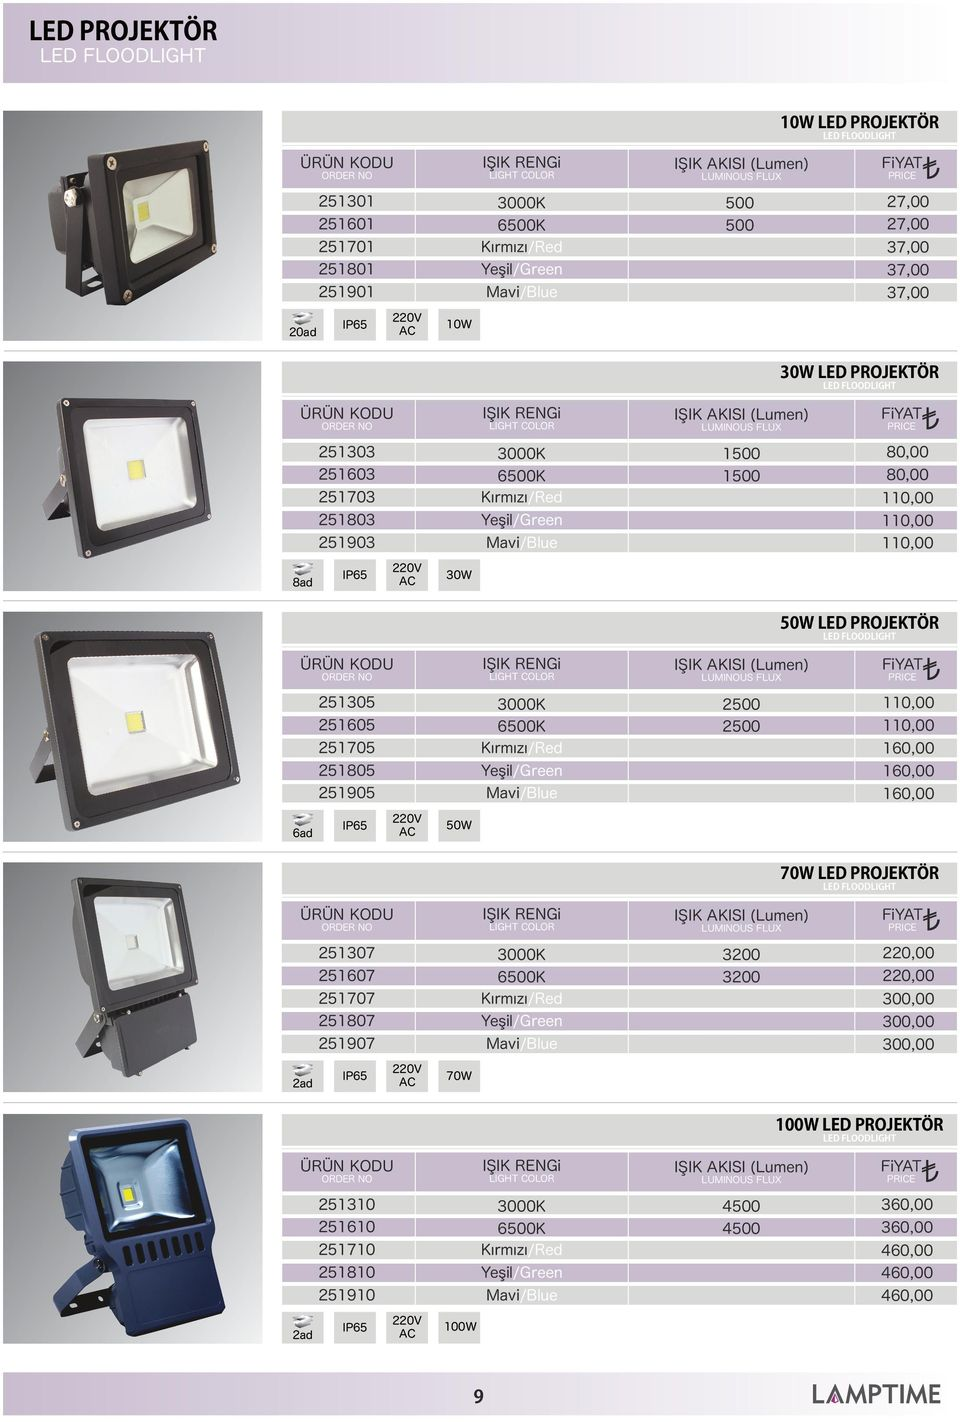 2500 110,00 251705 160,00 251805 160,00 251905 160,00 6ad IP65 50W 70W PROJEKTÖR FLOODLIGHT 251307 3200 2 251607 3200 2 251707 300,00 251807